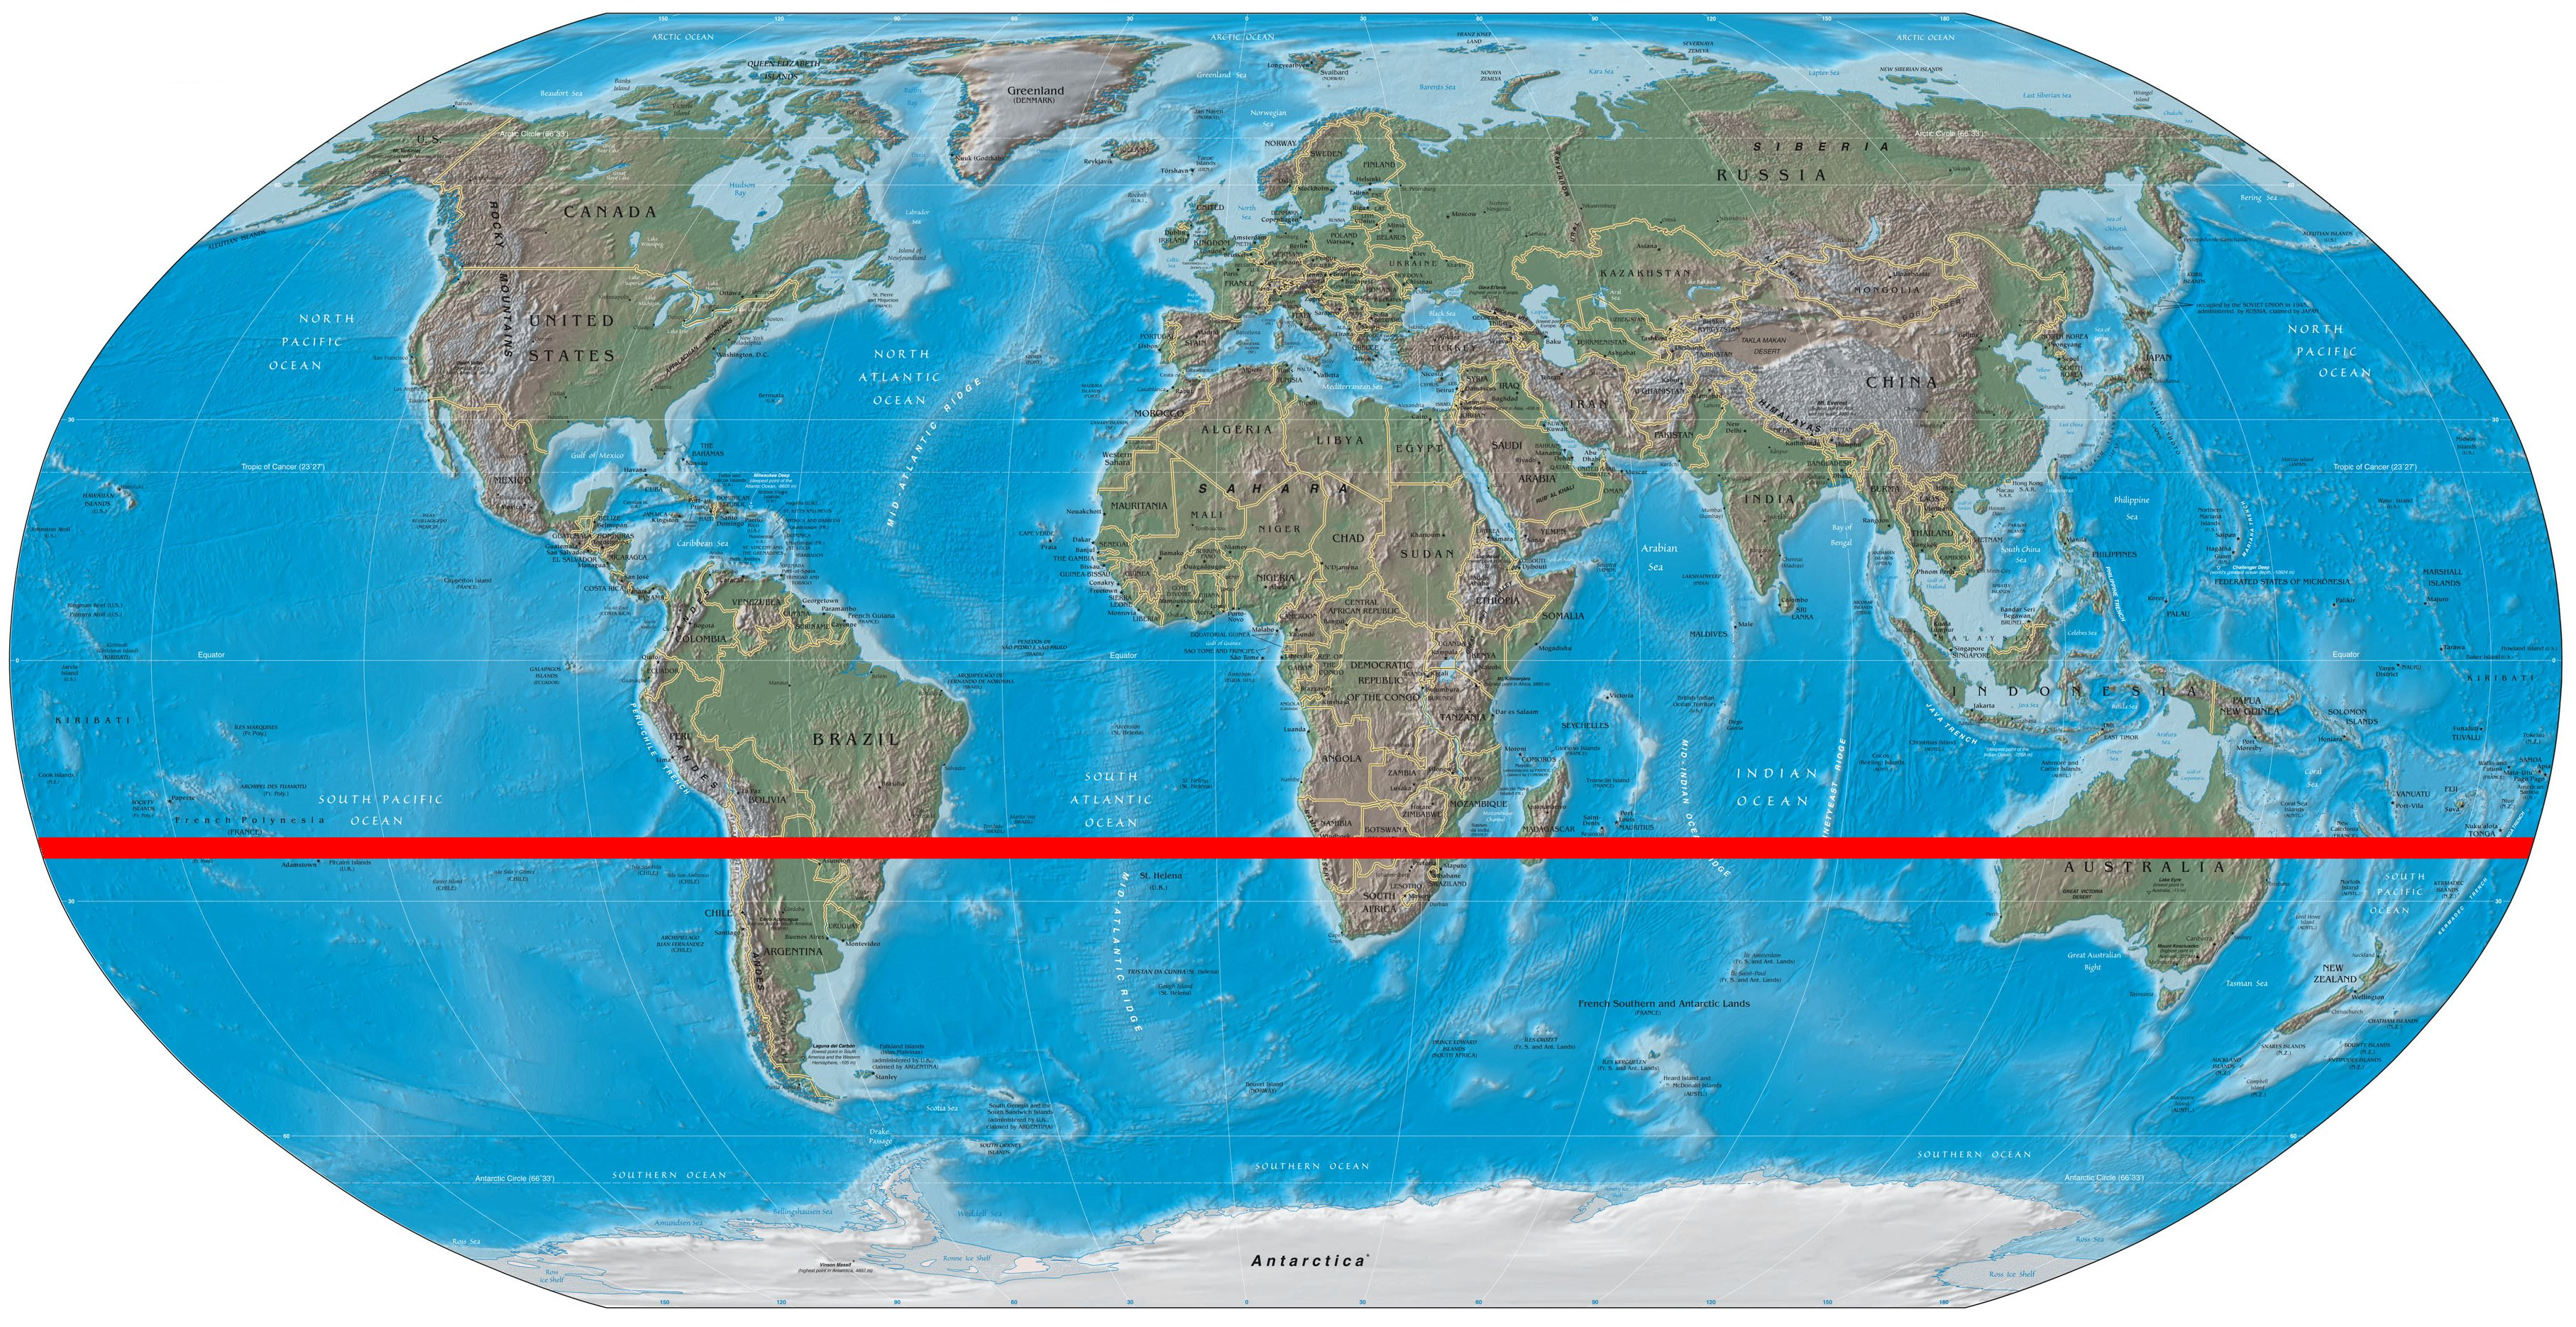 File:World map with tropic of capricorn.jpg - Wikipedia, the free ...